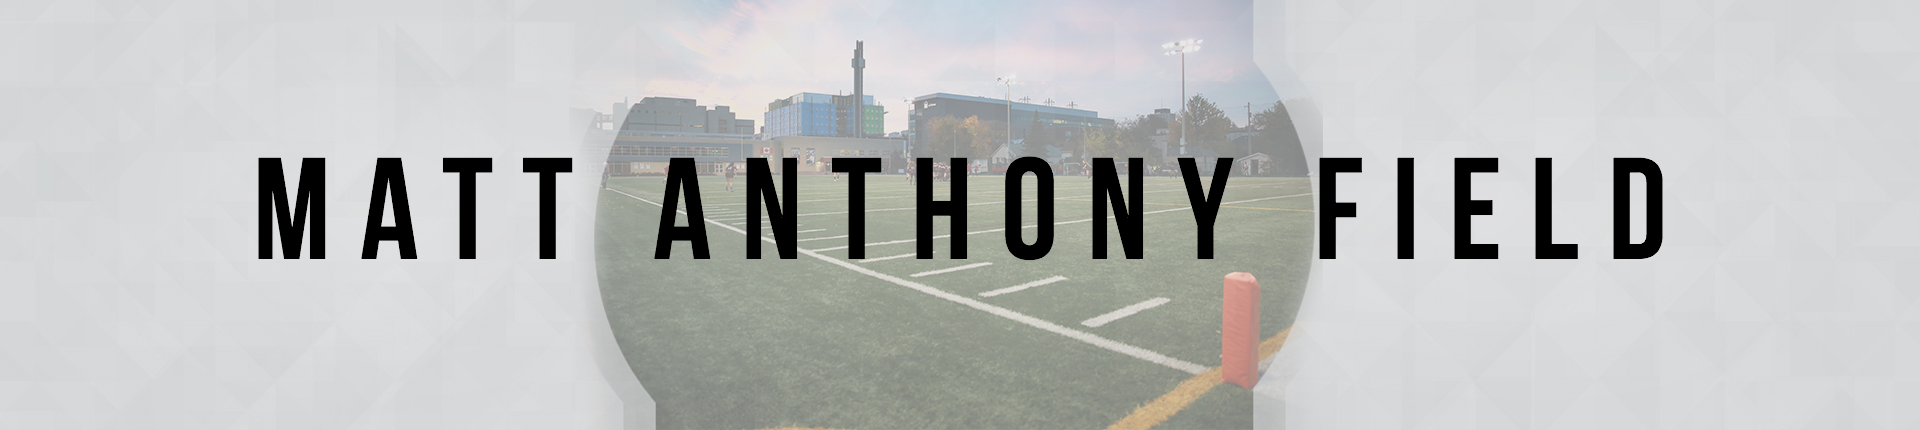 Matt Anthony Field